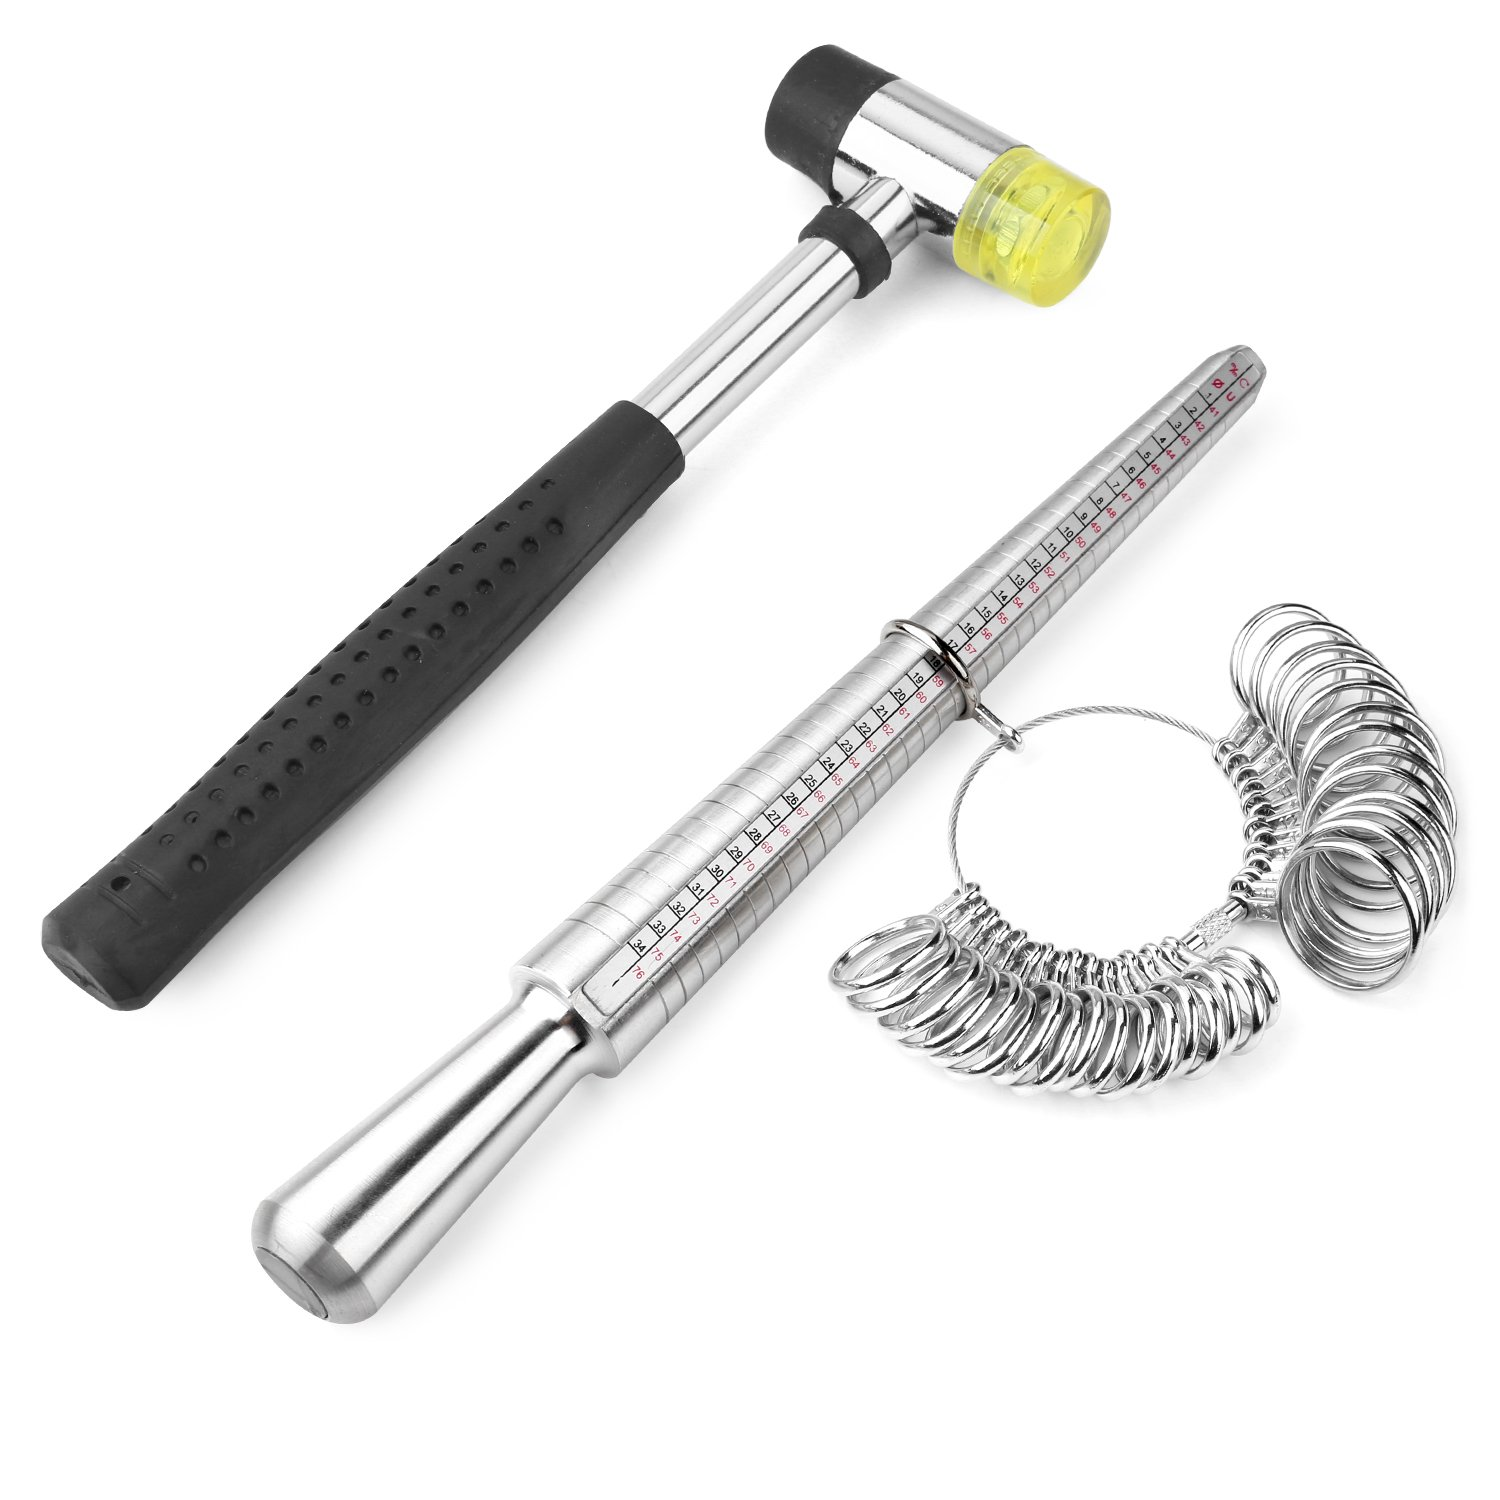 Accmor Jewelry Tools Including Rubber Jewelers Hammer & Ring Mandrel with Ring Sizer Guage - US Size 0-15 for Mother's Day by accmor